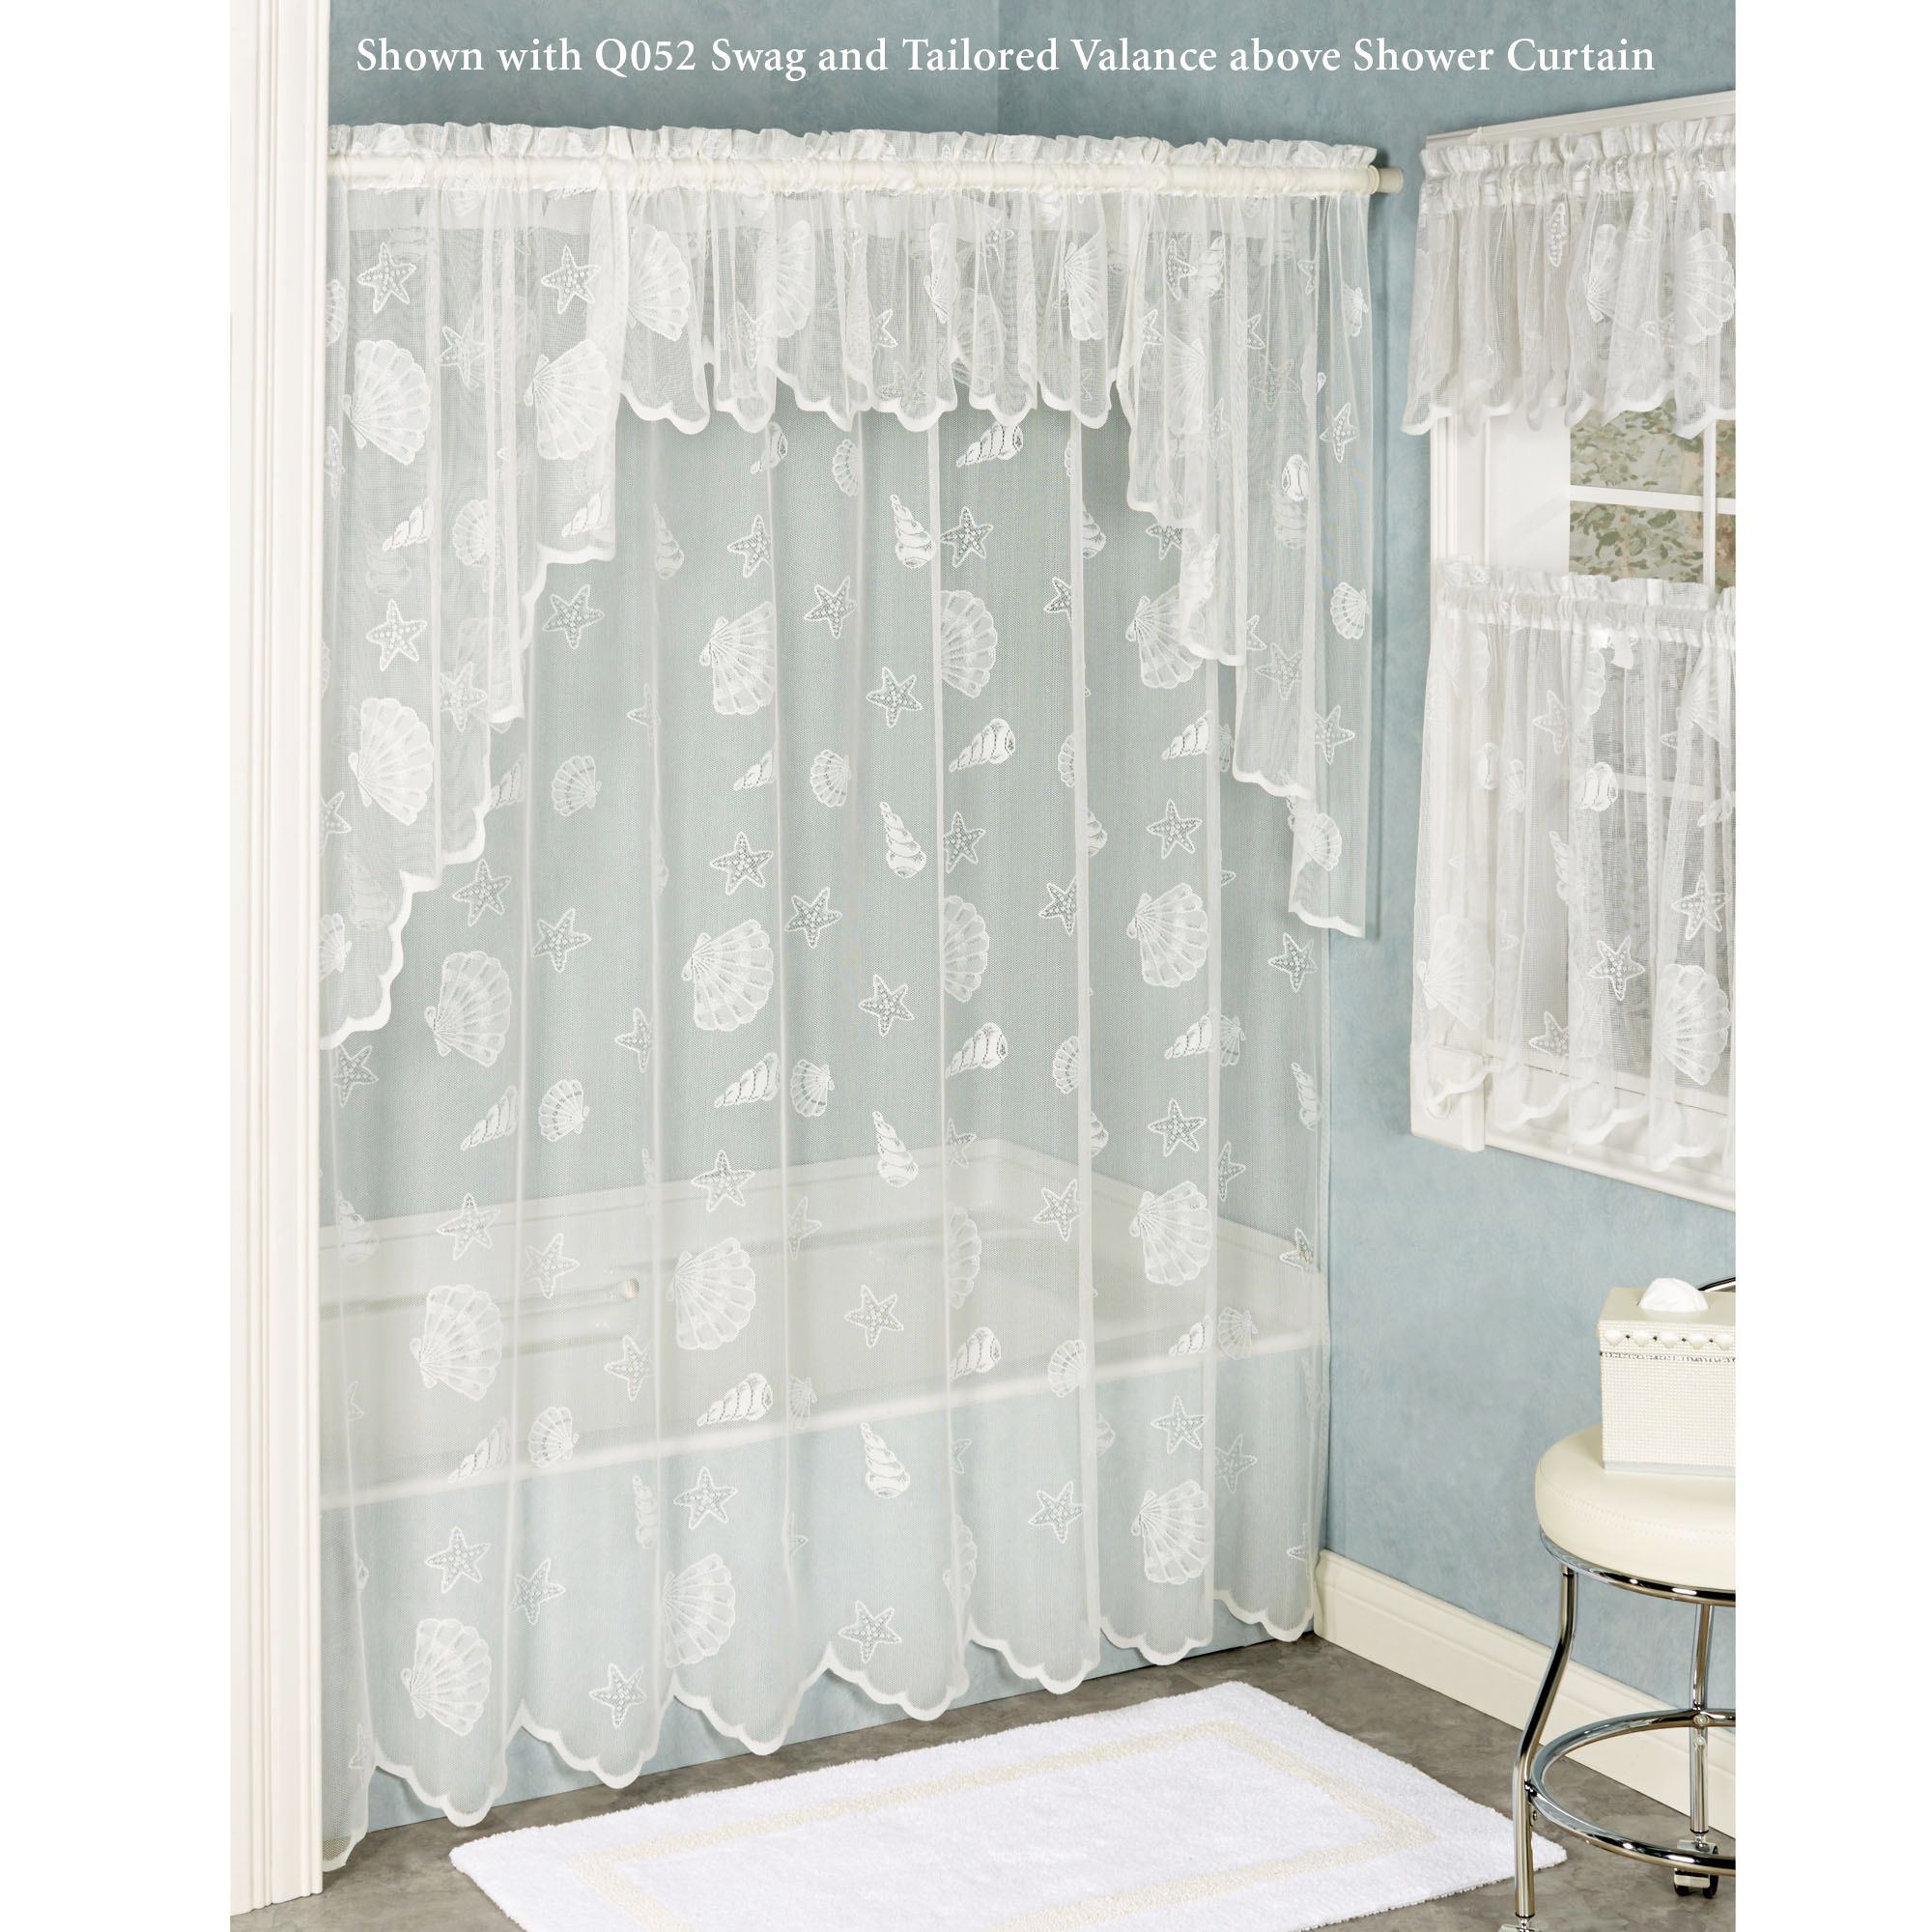 curtains jd curtain shower a underwater explorers products scubadivingaddicts